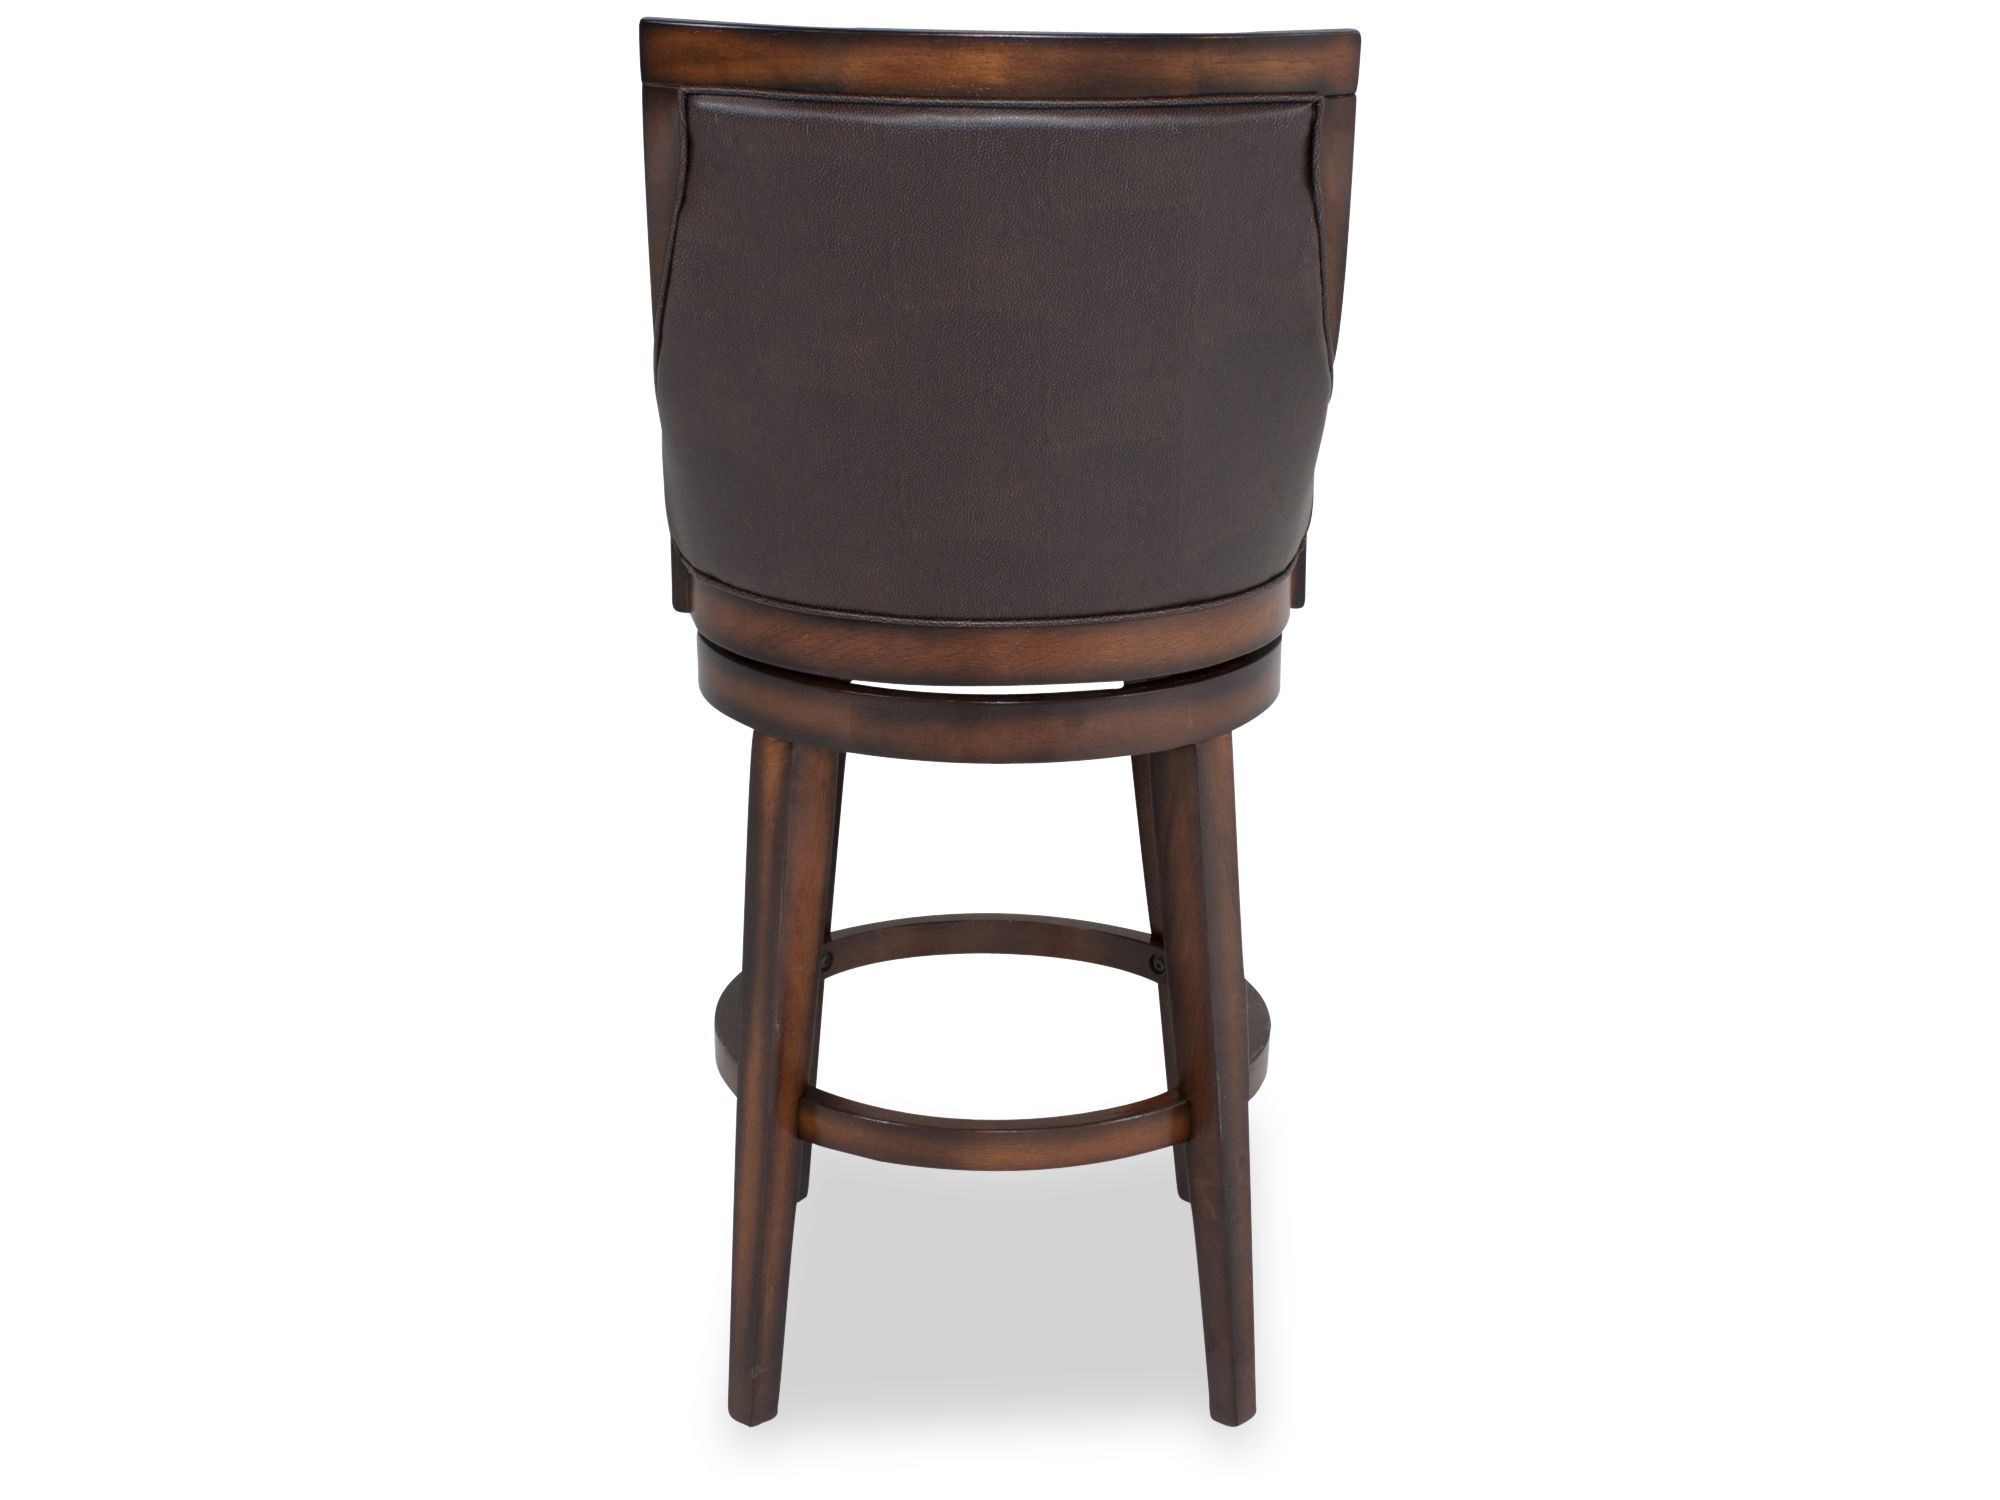 Contemporary Breakfast Bar Stools Contemporary Bar Stool In Brown Mathis Brothers Furniture